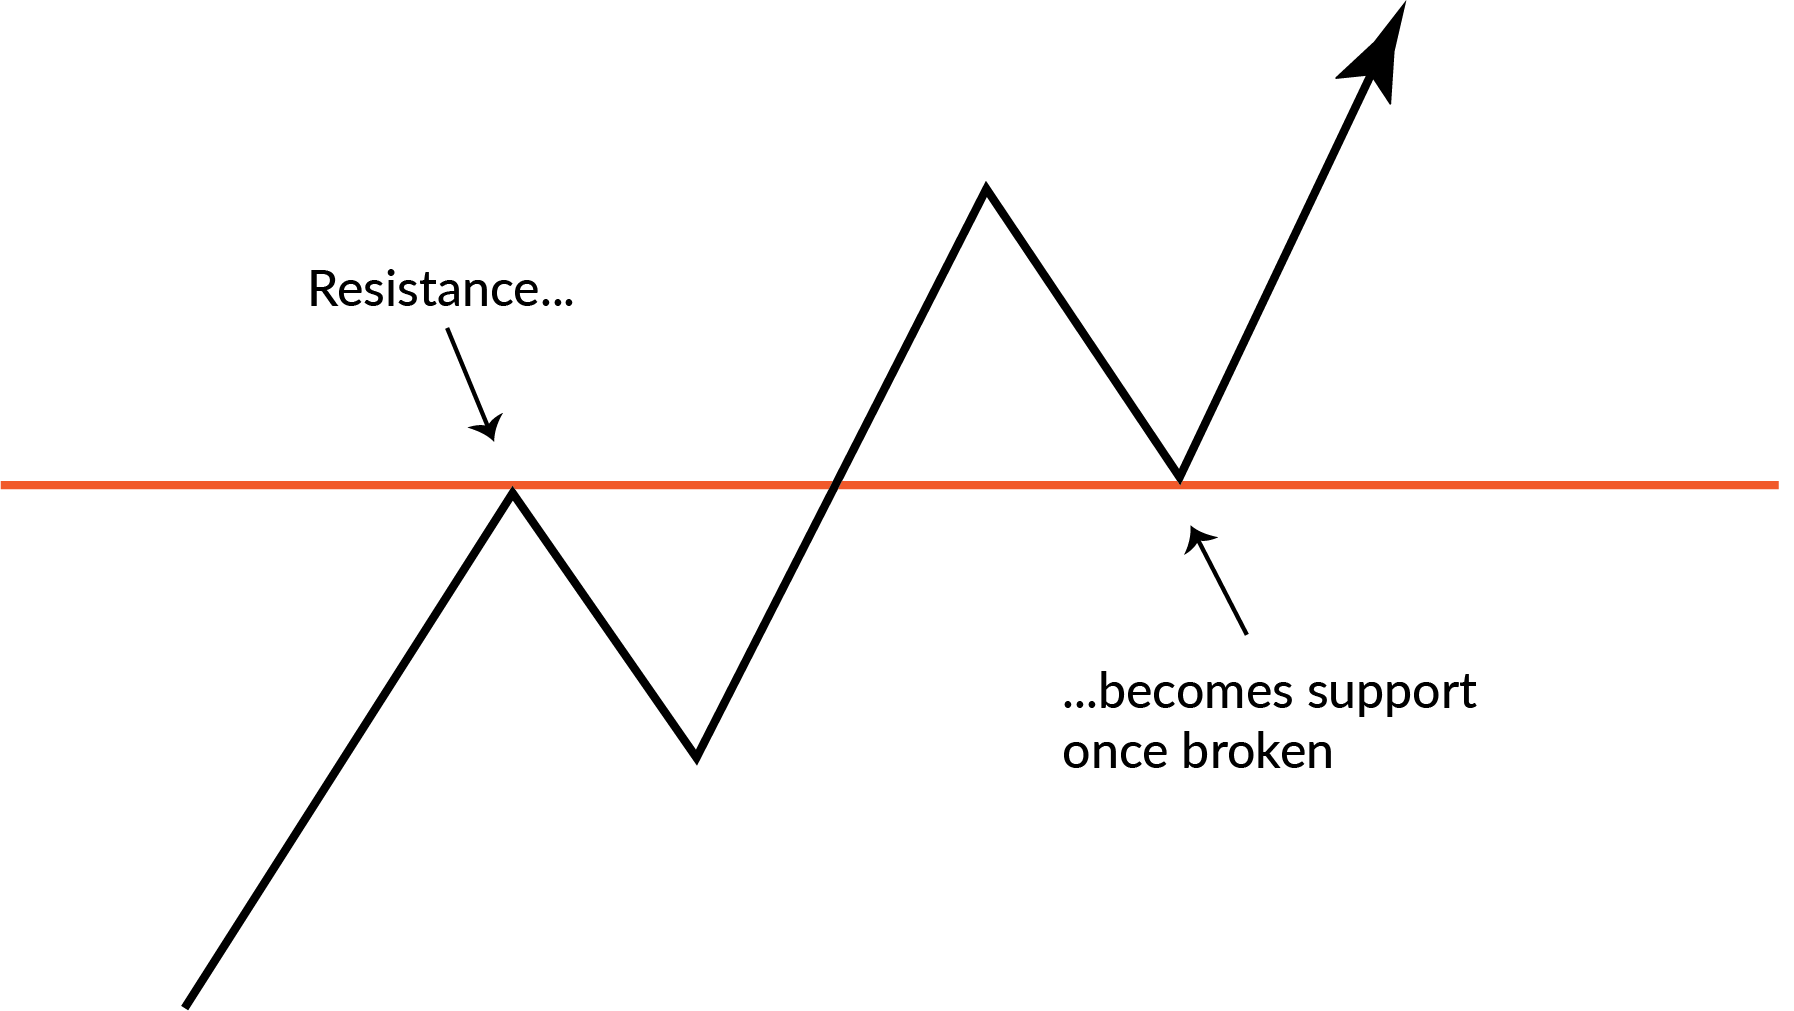 How to Trade Support and Resistance Levels